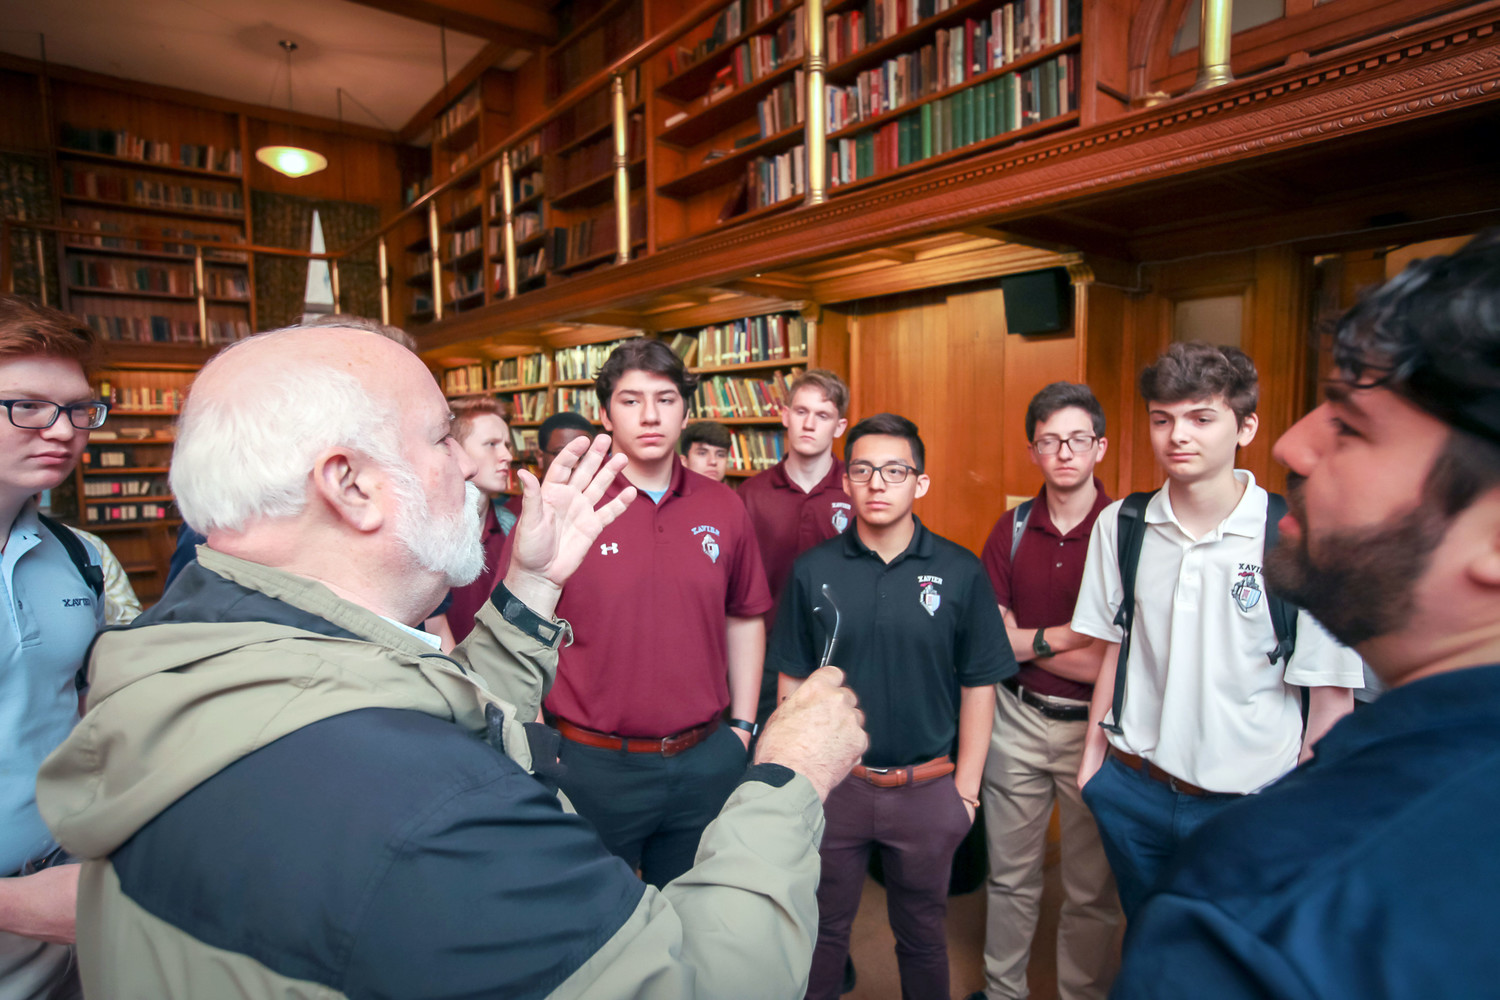 Father Greg Boyle, S.J., speaks to students and staff at Xavier High School in Manhattan May 17.